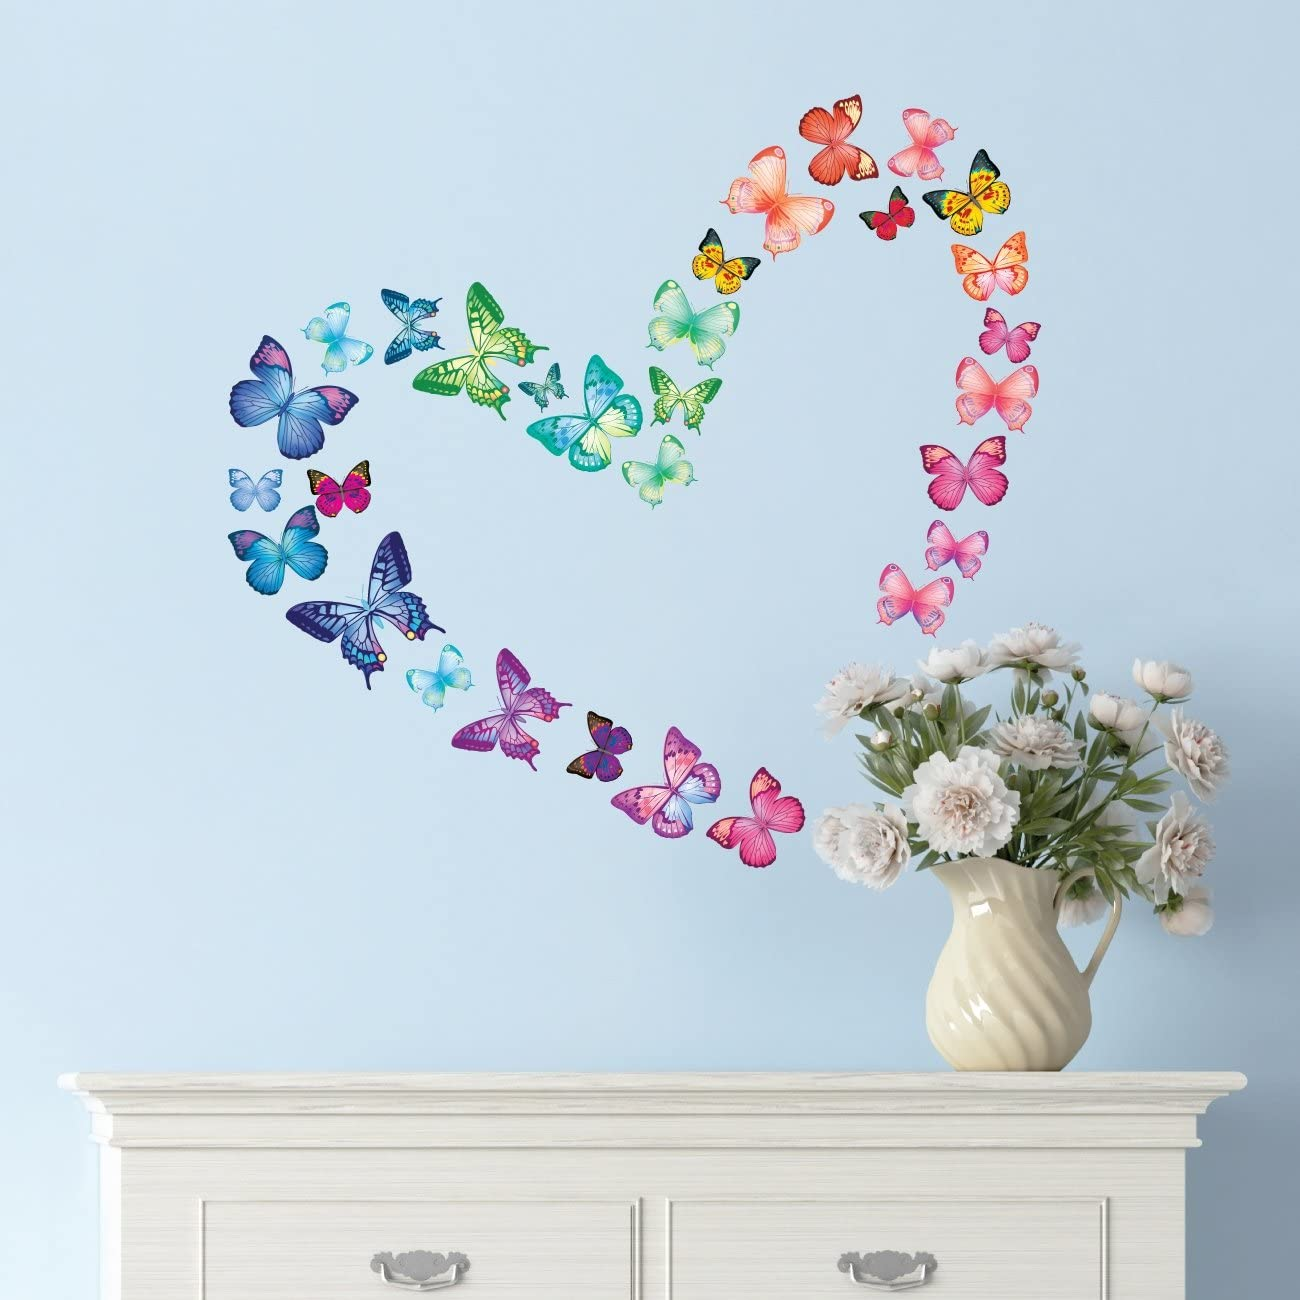 DECOWALL DS-8029 30 Vibrant Butterflies Kids Wall Stickers Wall Decals Peel and Stick Removable Wall Stickers for Kids Nursery Bedroom Living Room (Small) décor